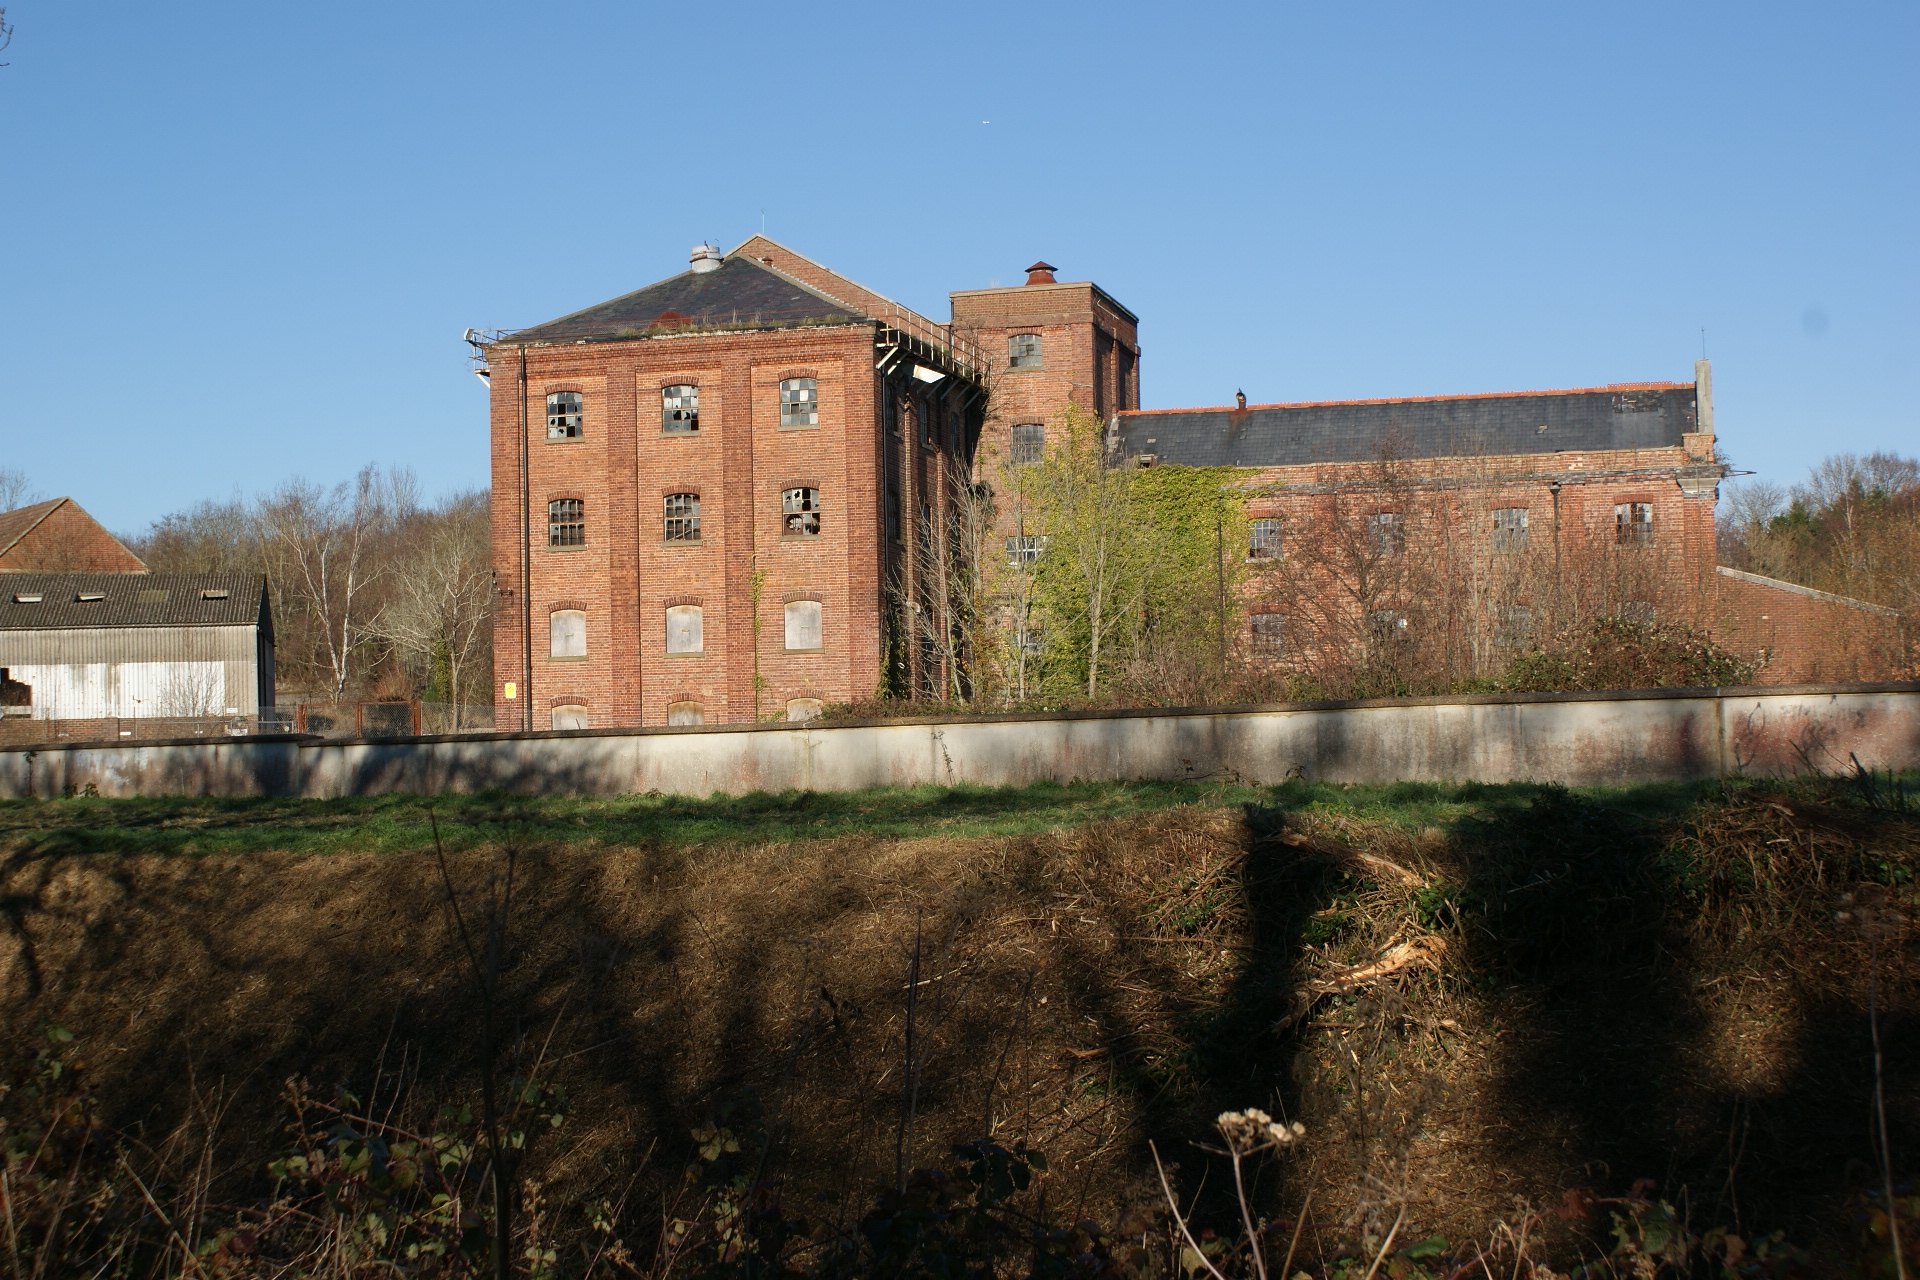 The former Hodsons Mill